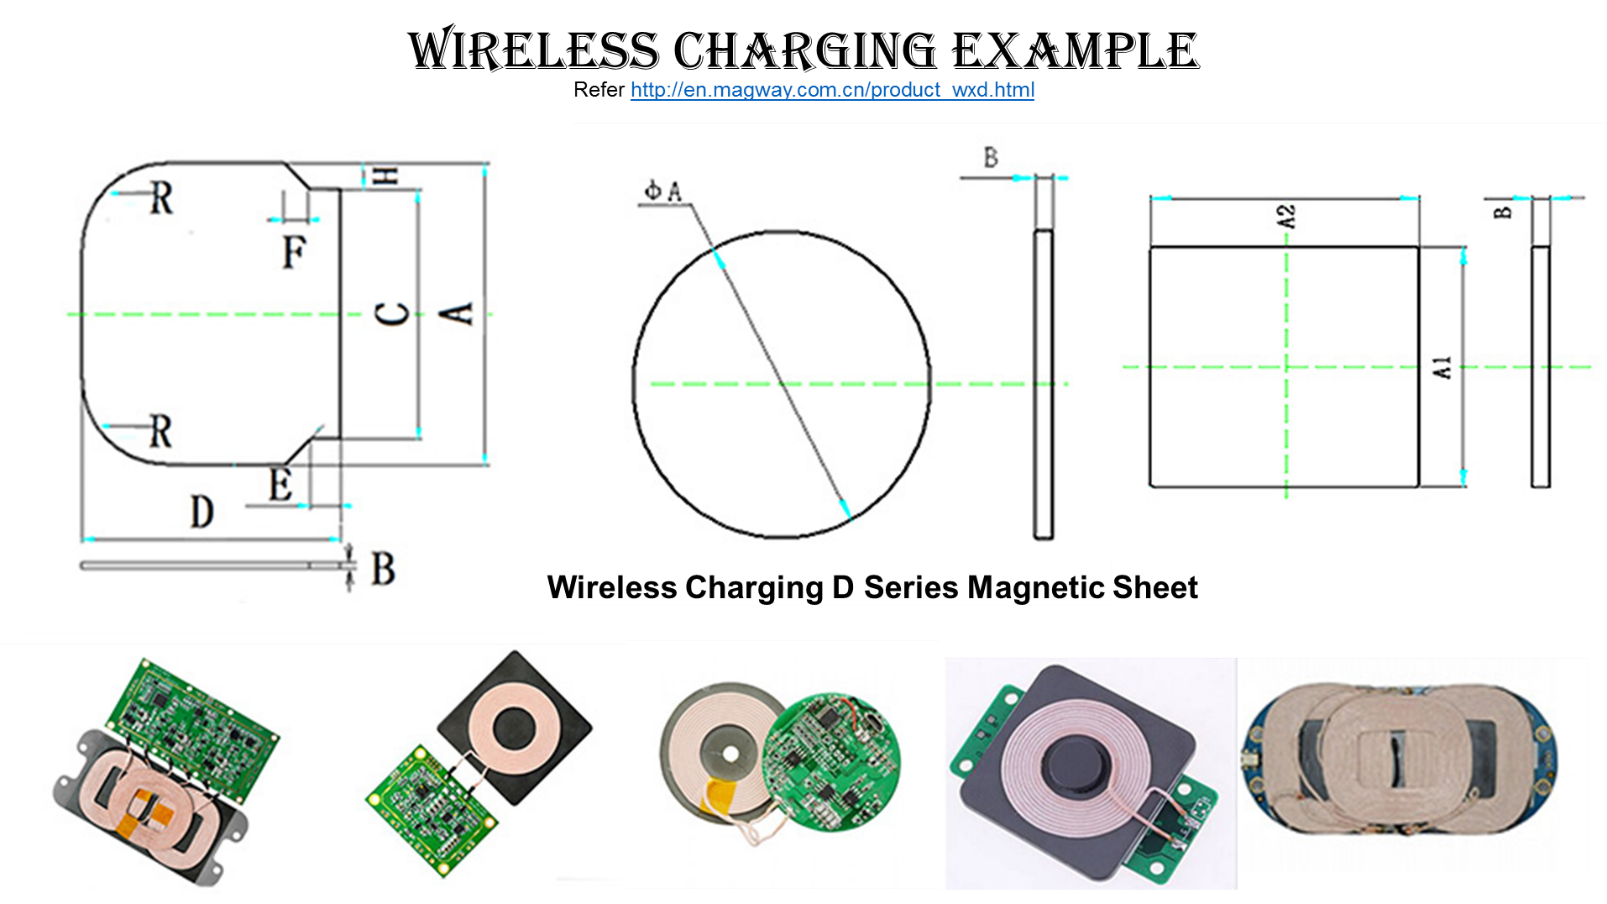 Design Hmi Wireless Power Transfer Technology Transmitter Circuit Qi Compliant Receivers And Circuits The Bq500410a Is A Texas Instruments Ic Companion Receiver Ics Include